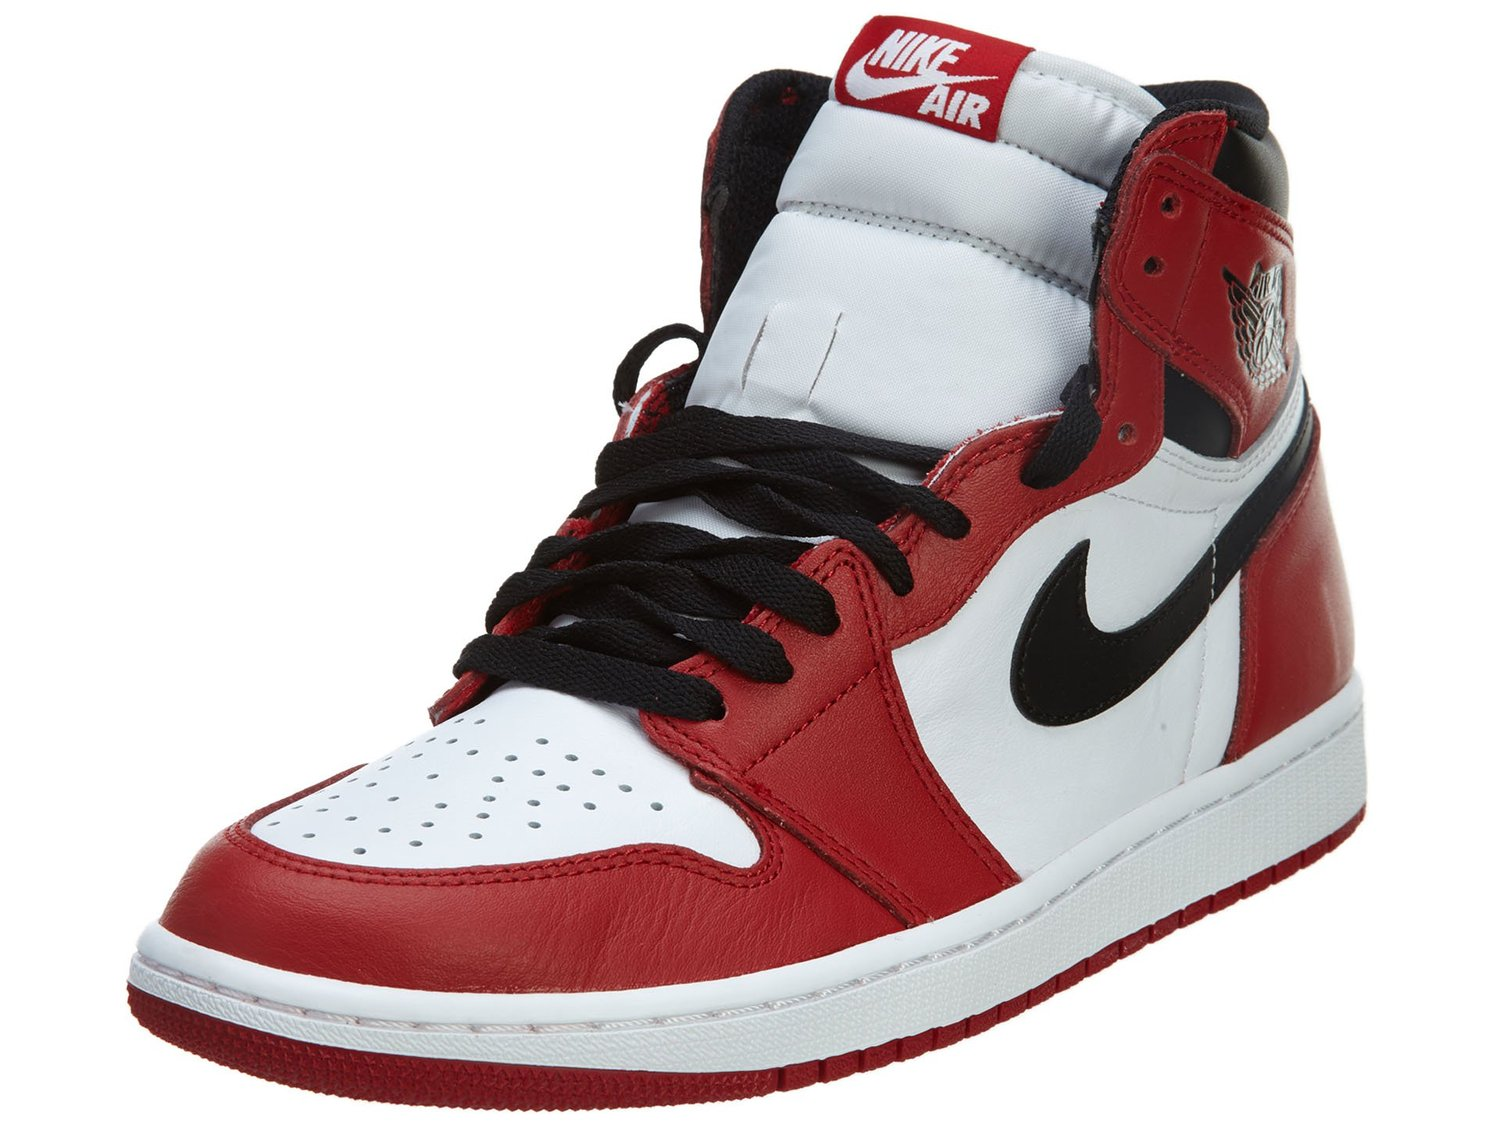 huge selection of 8d61a 44101 Nike Mens Air Jordan 1 Retro High OG Chicago 2015